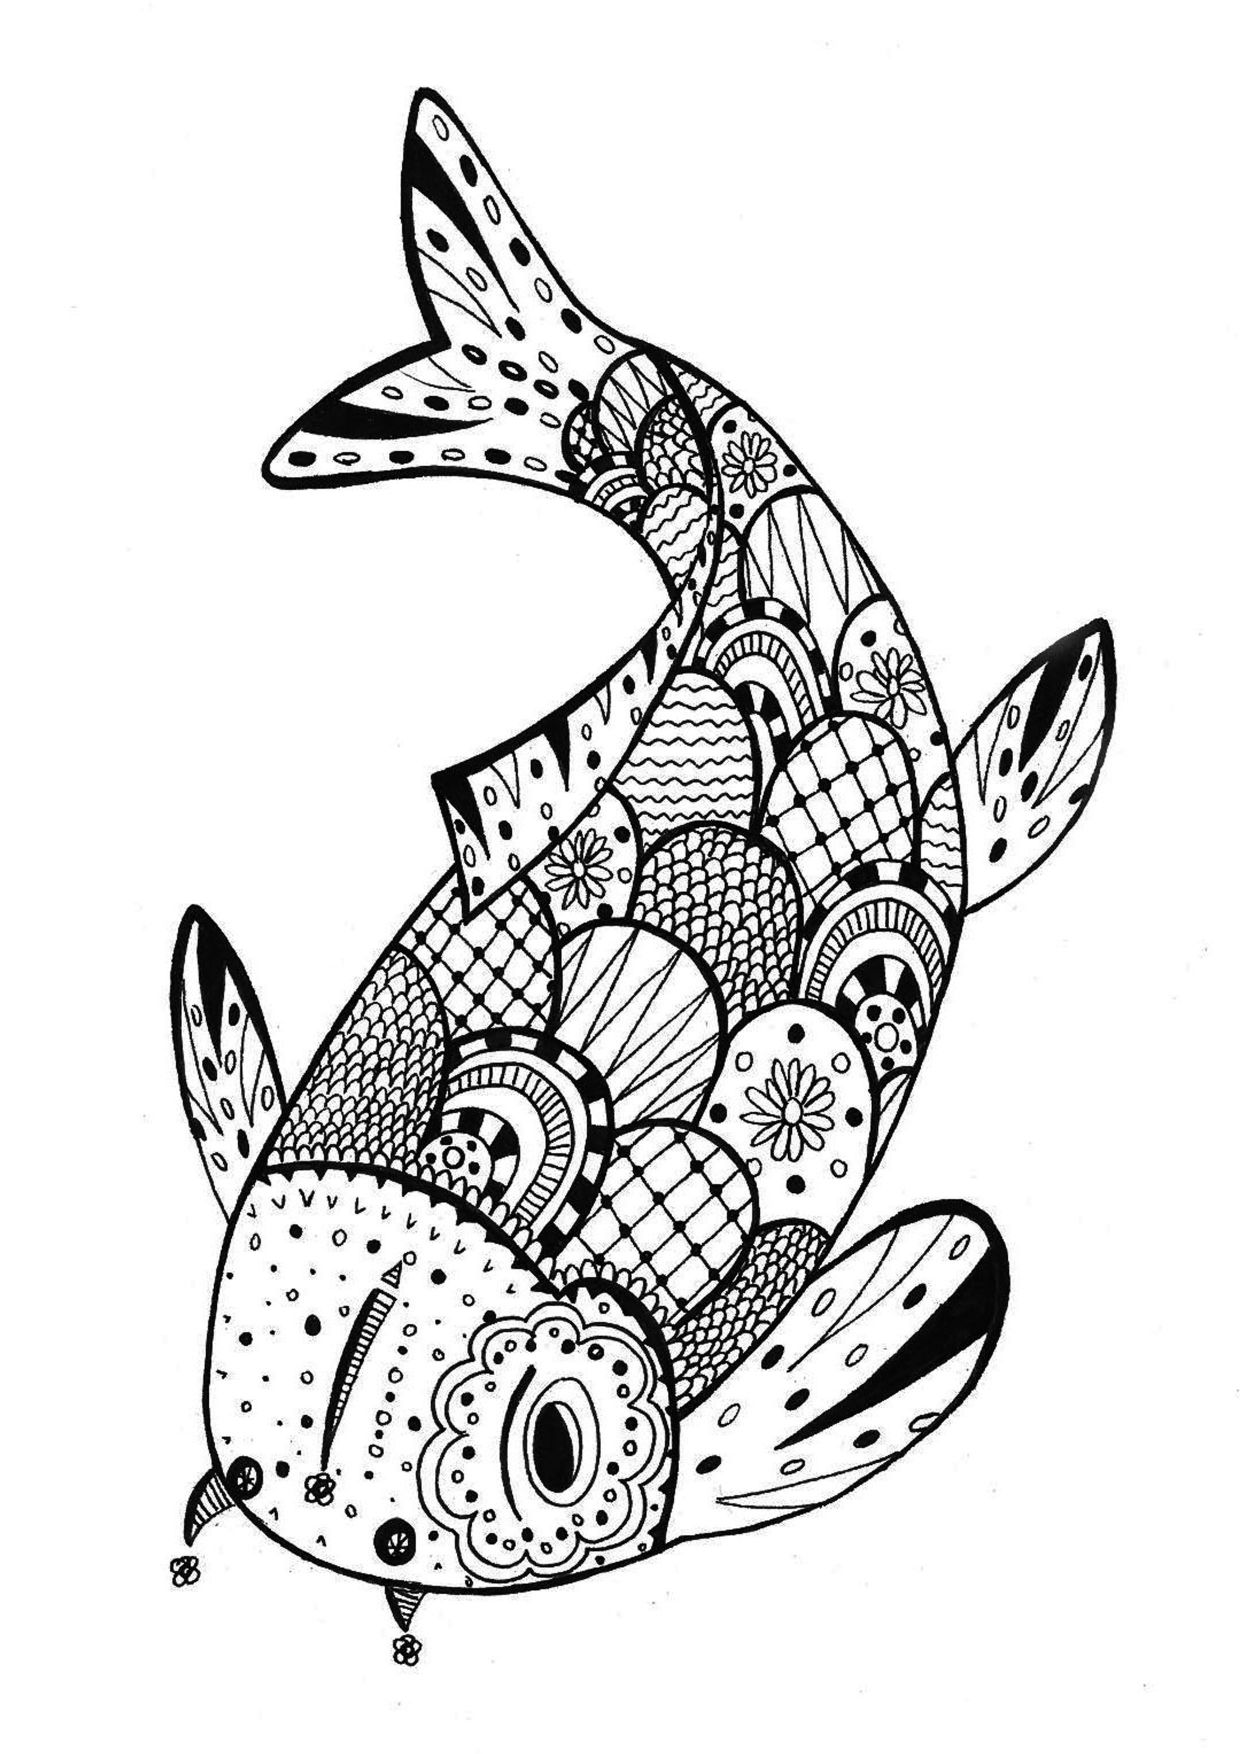 1240x1754 Inspiring Fish Zentangle Rachel Coloring Pages For Adults Of Ideas